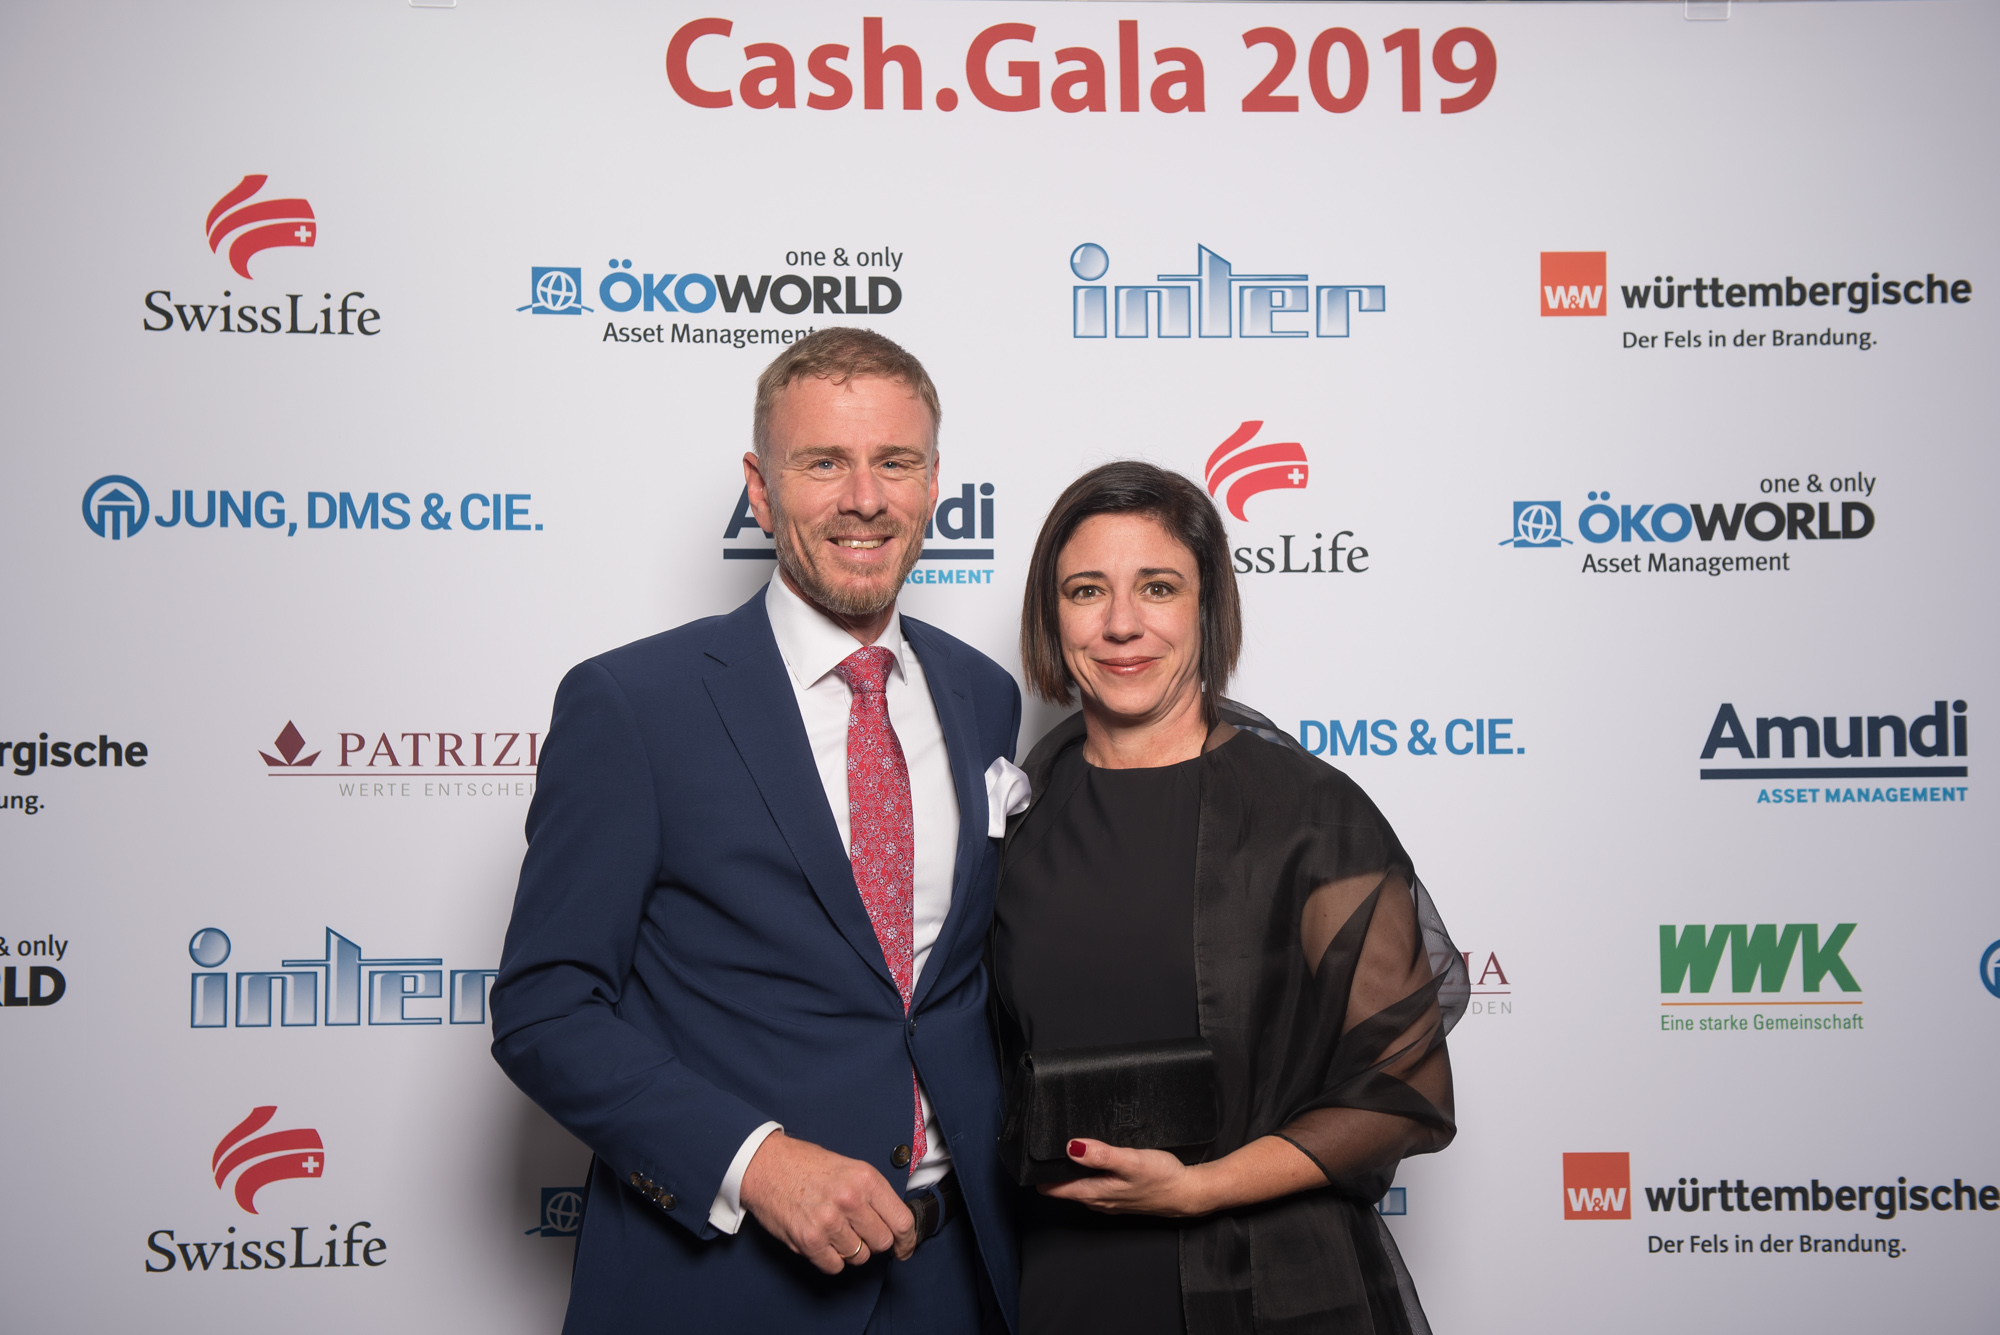 CashGala 2019 0060 AM DSC7121 in Cash.Gala 2019